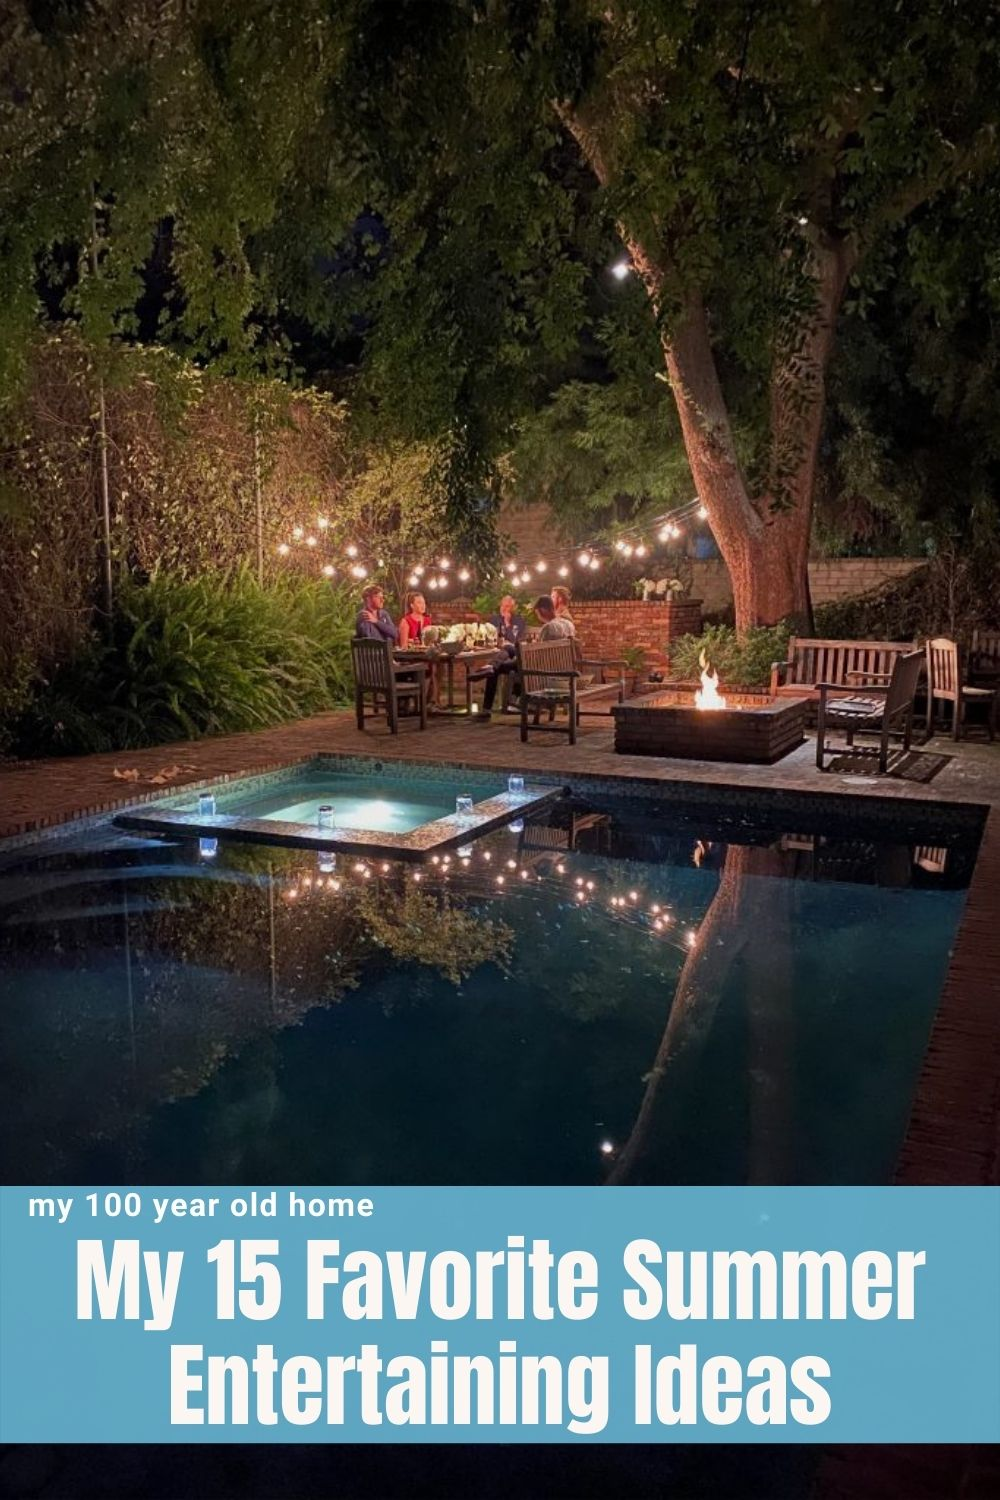 Now that we are in the midst of summer I thought it might be fun to share some of my favorite summer entertaining ideas. I hope these might inspire you to try some of my ideas.